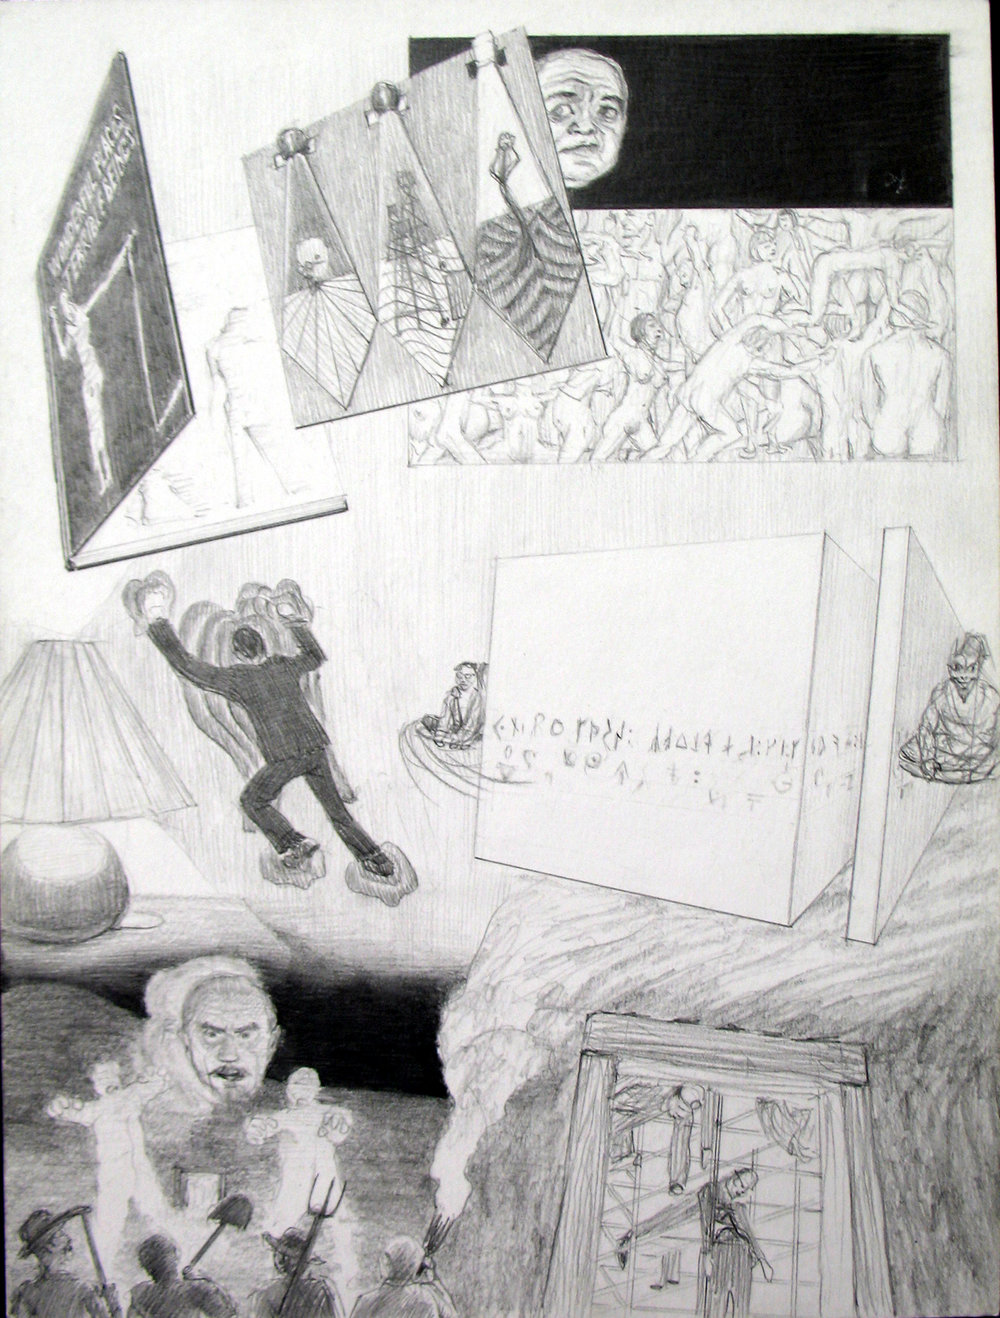 "Dream Drawing (""In a thrift store, I saw a Salvadore Dali cartoon book called Wonderful places terrible beings but the insides were misprinted they smeared to grey, except the left edges...""), 1996 graphite on paper 30,5 x 22 cm - 12 x 8 5/8 inches"